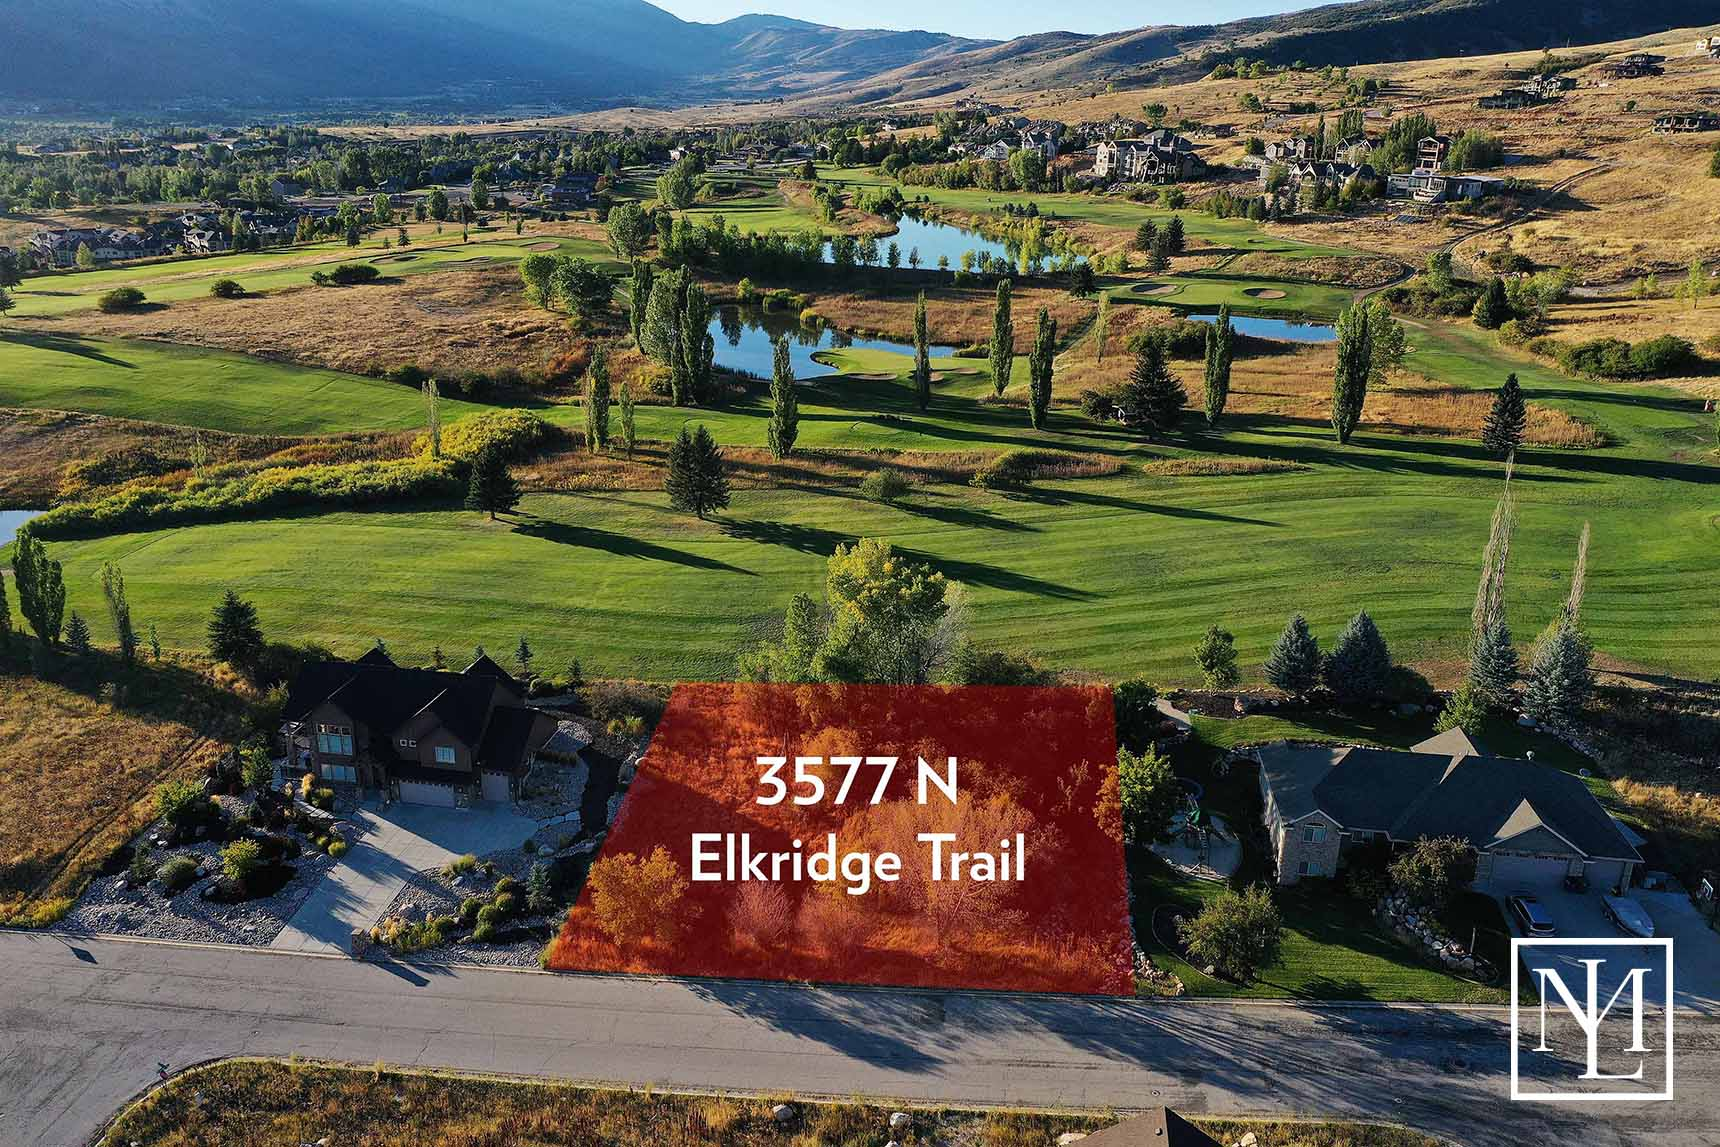 3577 N Elkridge Trail, Eden UT 84310 001